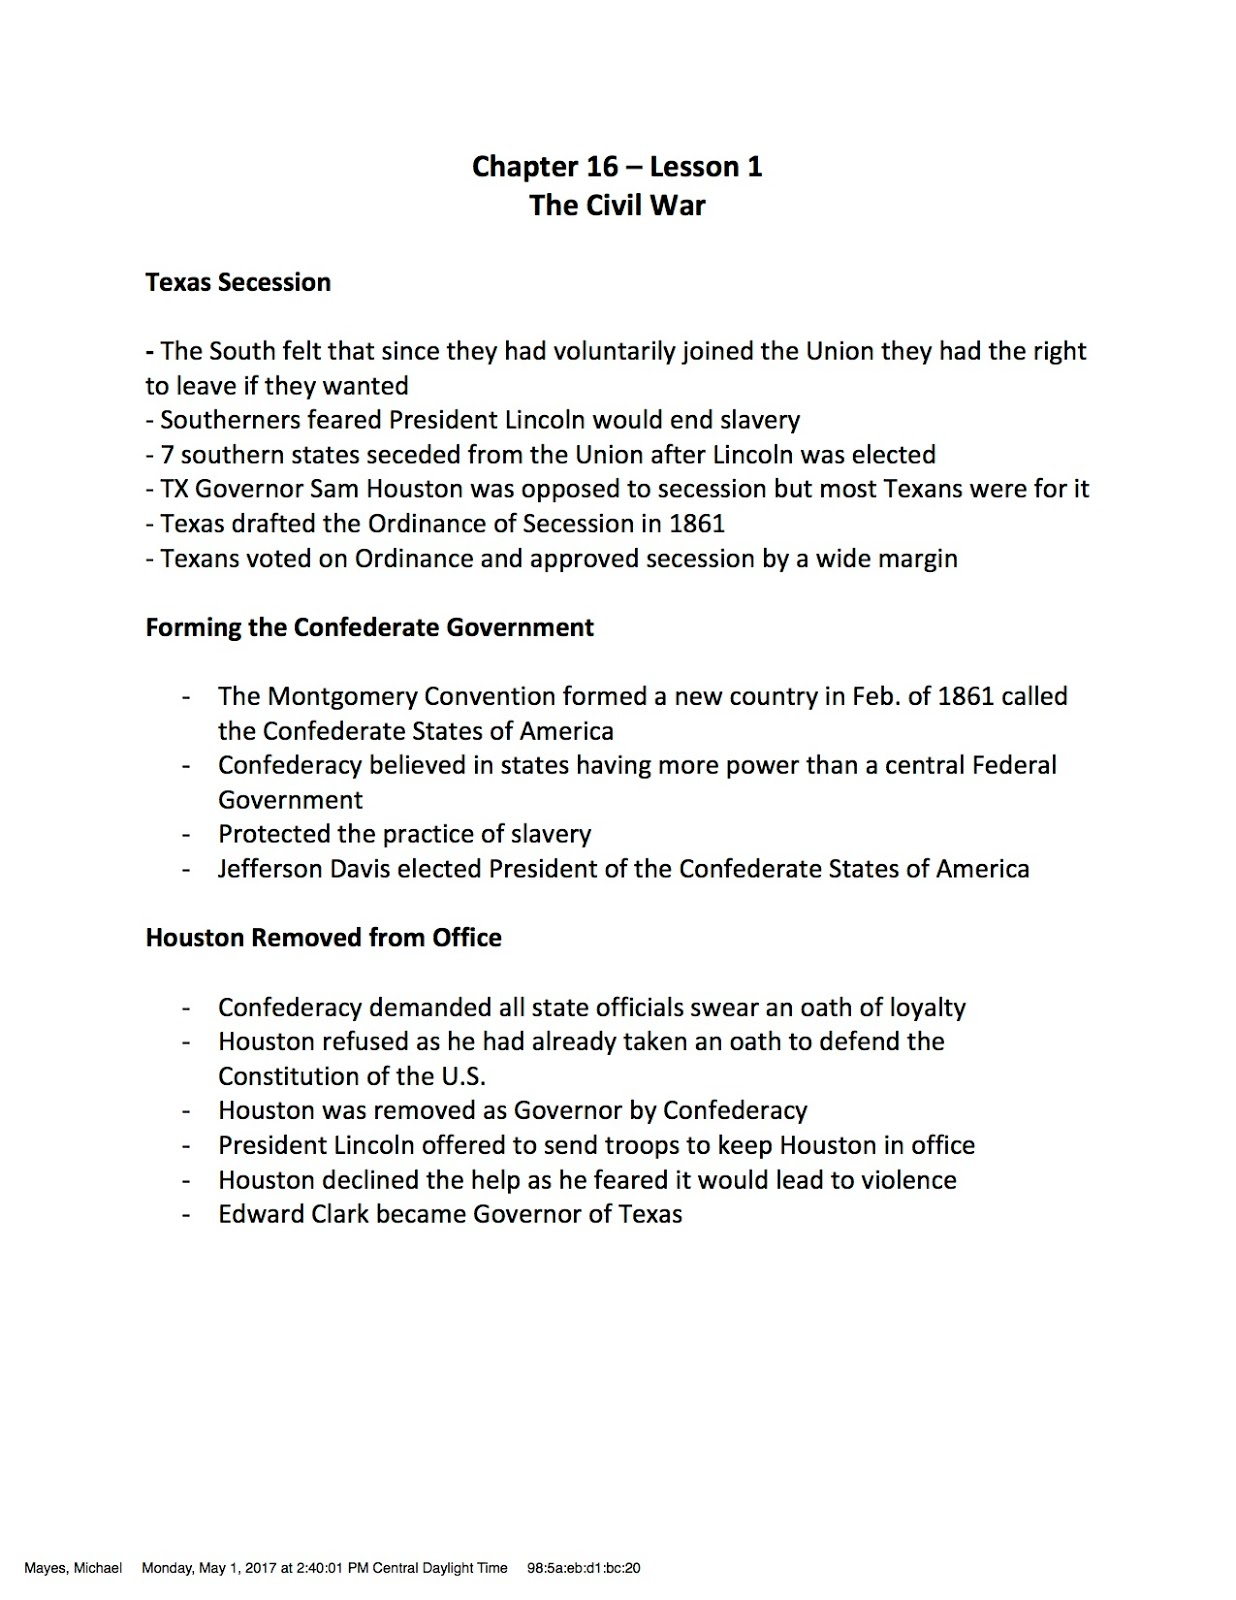 worksheet If I Were President Worksheet ehms texas history vocabulary builder worksheet due chapter 16 if they do not have a printed copy of the notes will write in class note students with and trade accommod